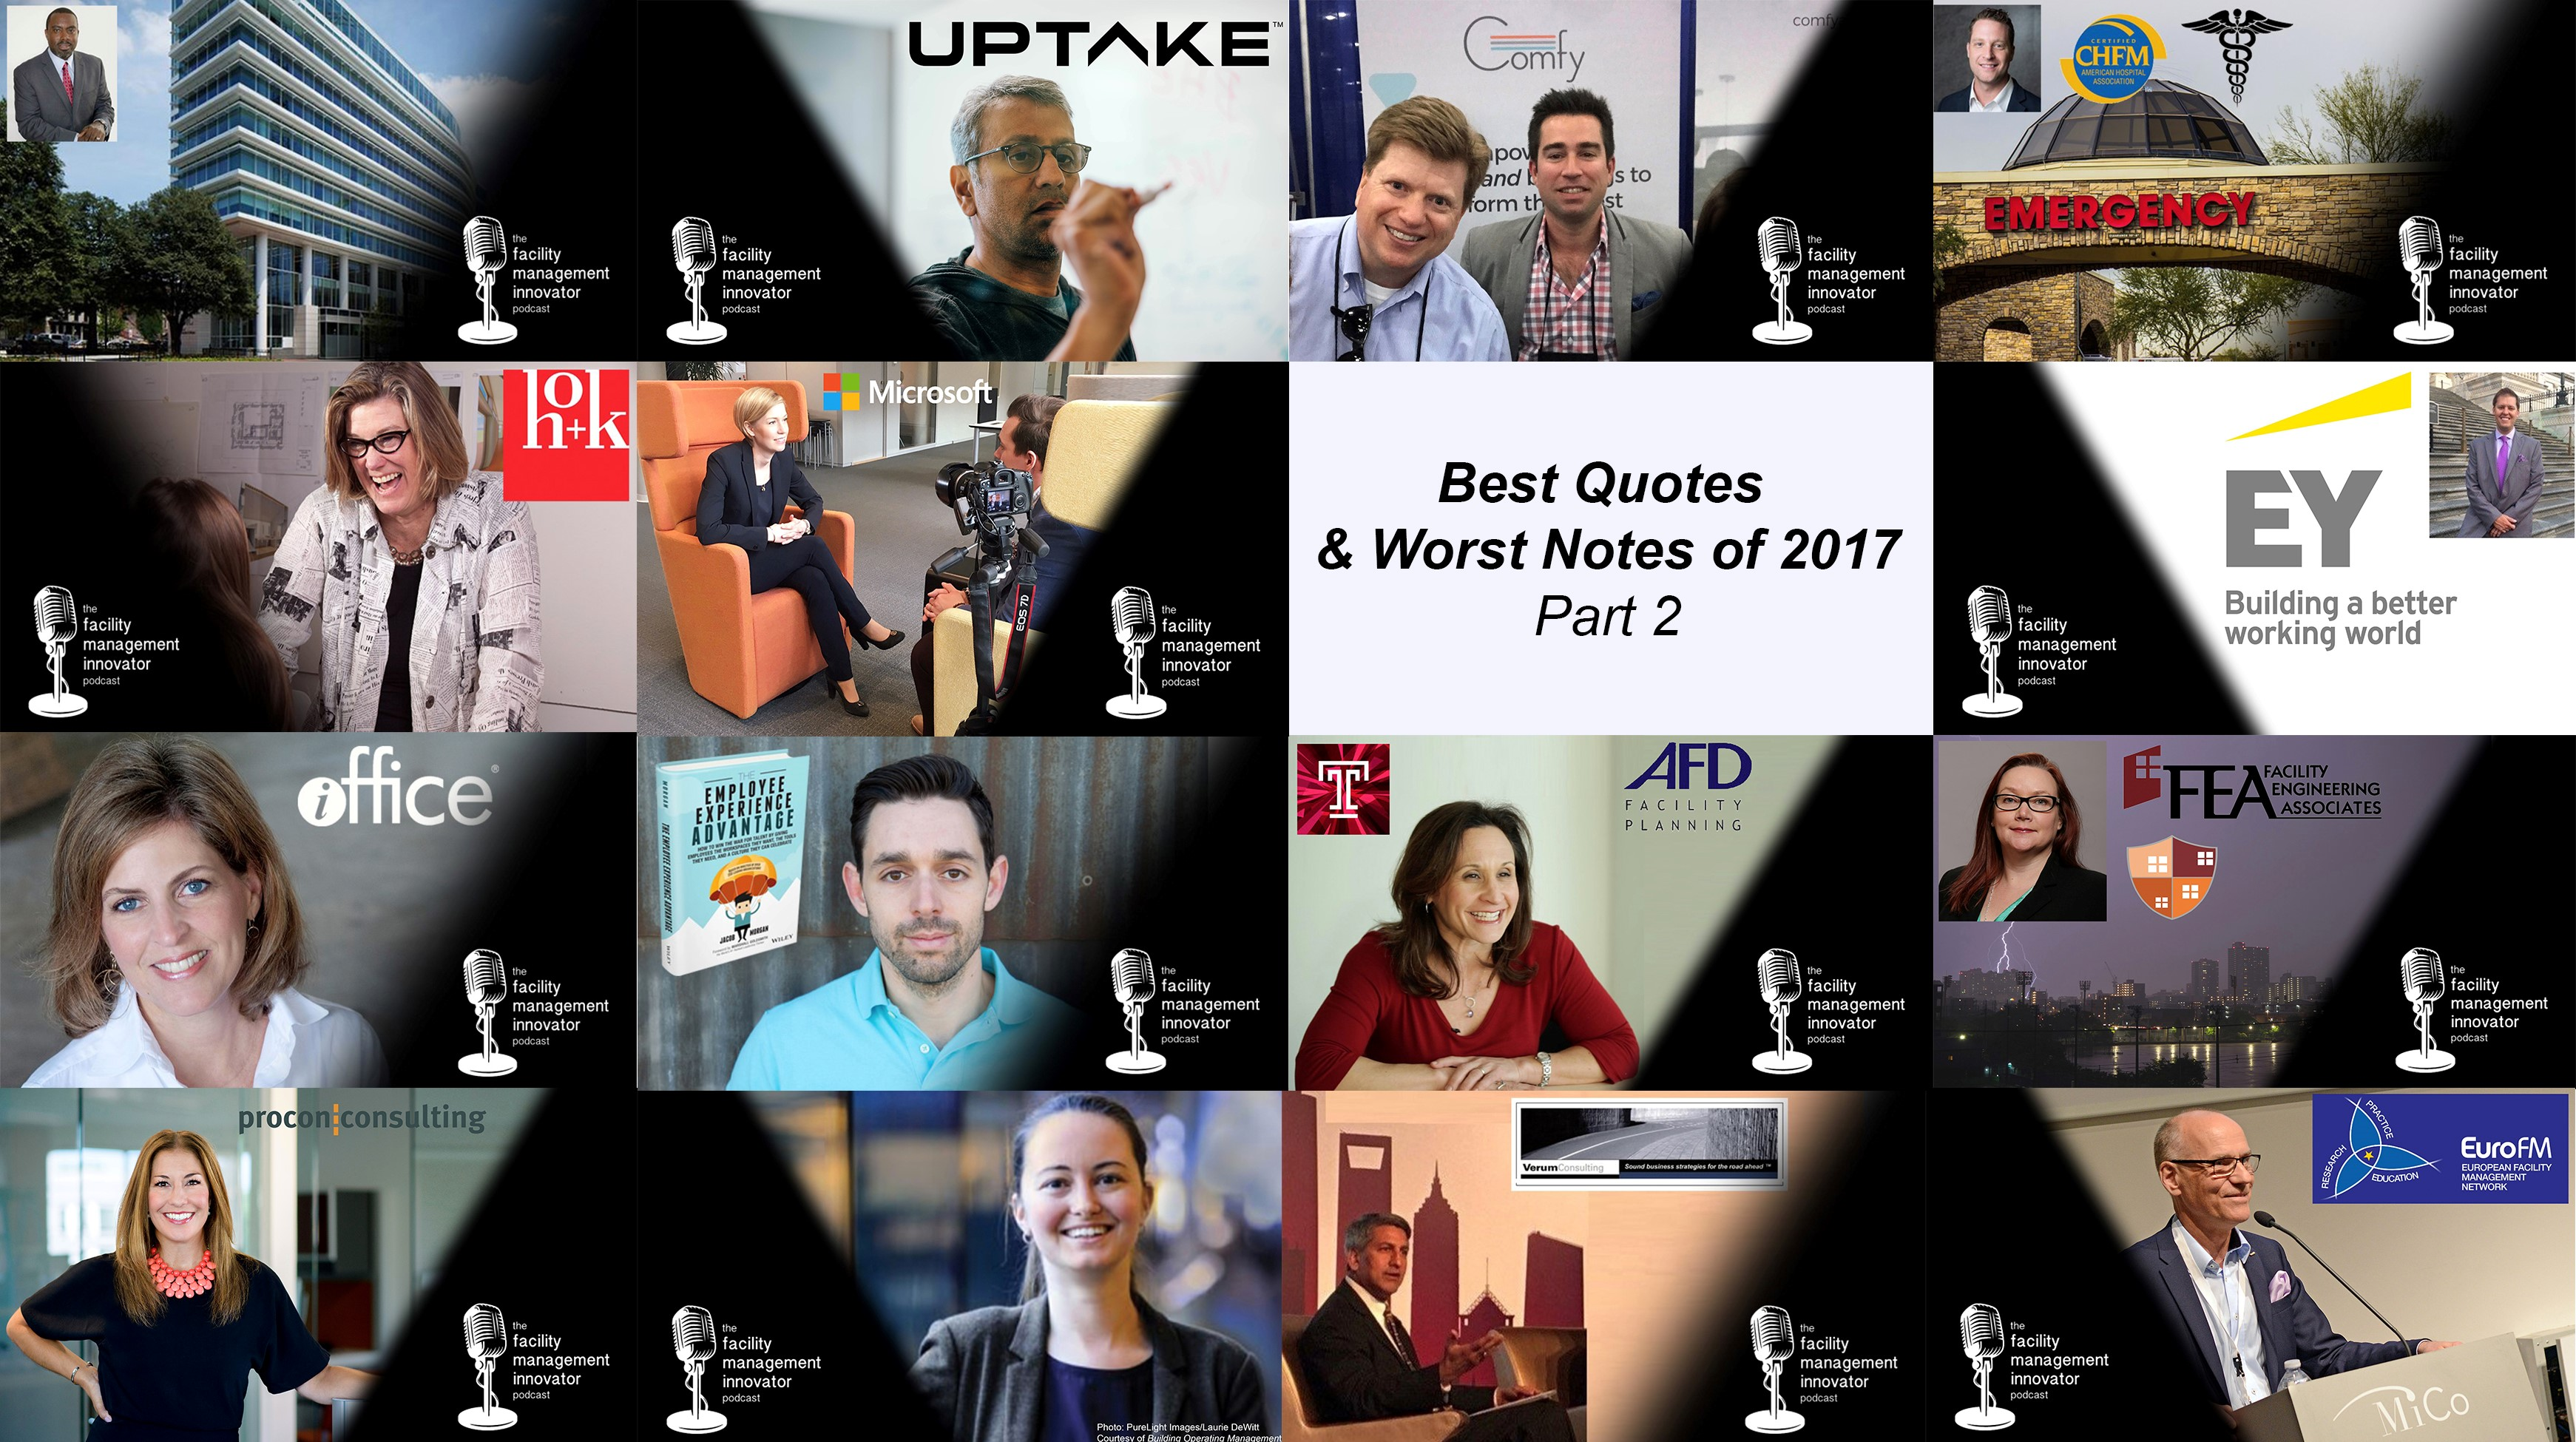 Ep. 70: Best Quotes & Worst Notes of 2017 (Part 2) | An FM Innovator Podcast Retrospective